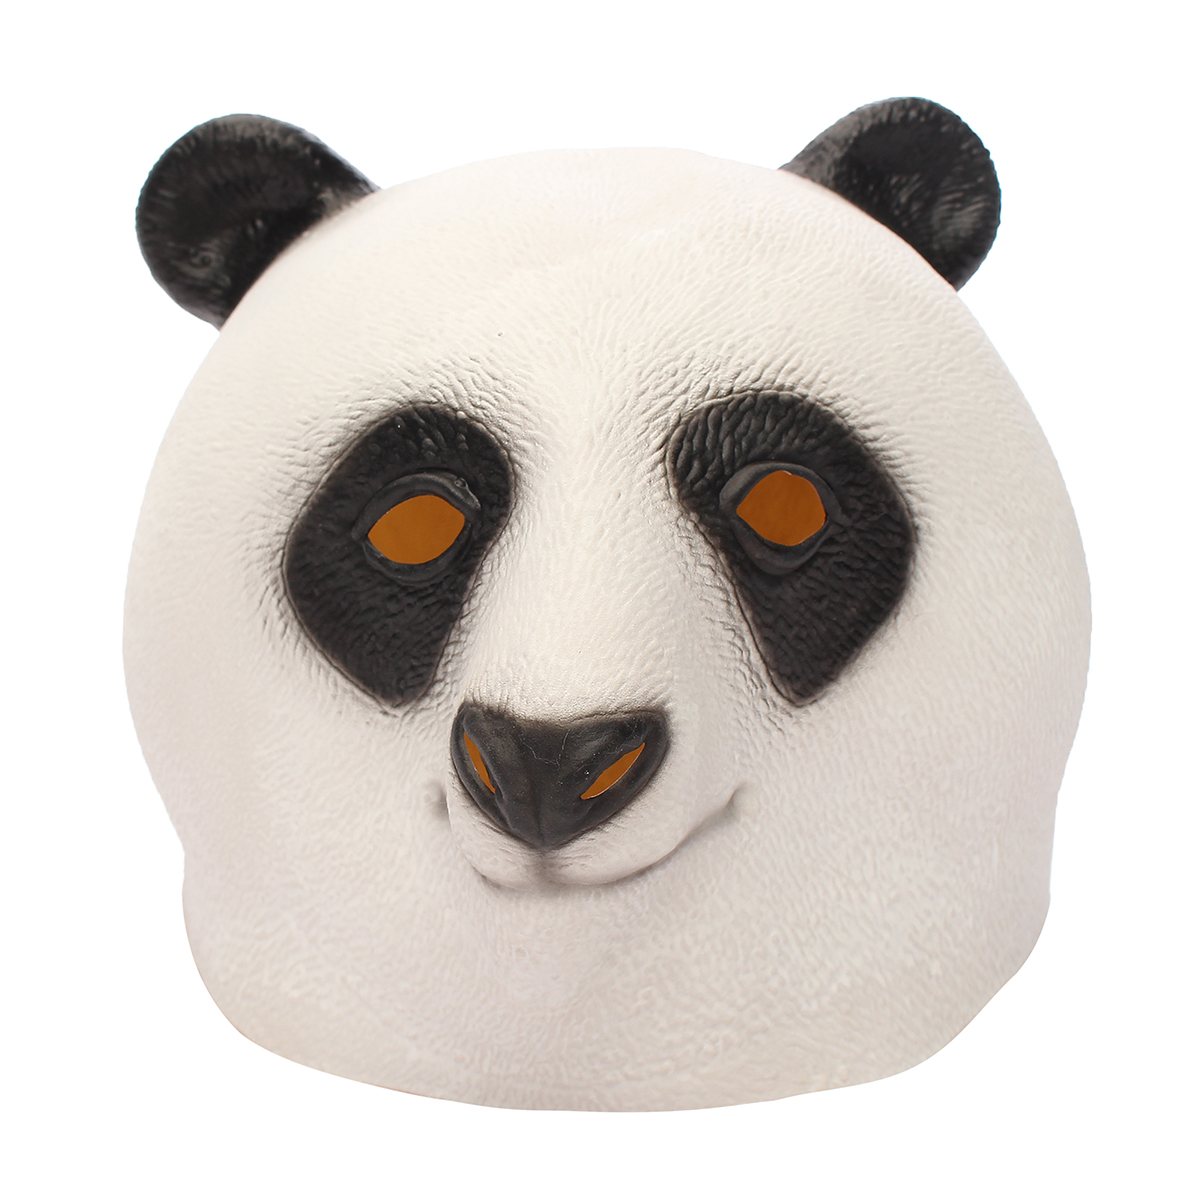 Panda Head Mask Creepy Animal Halloween Costume Theater Prop Latex Party Toy